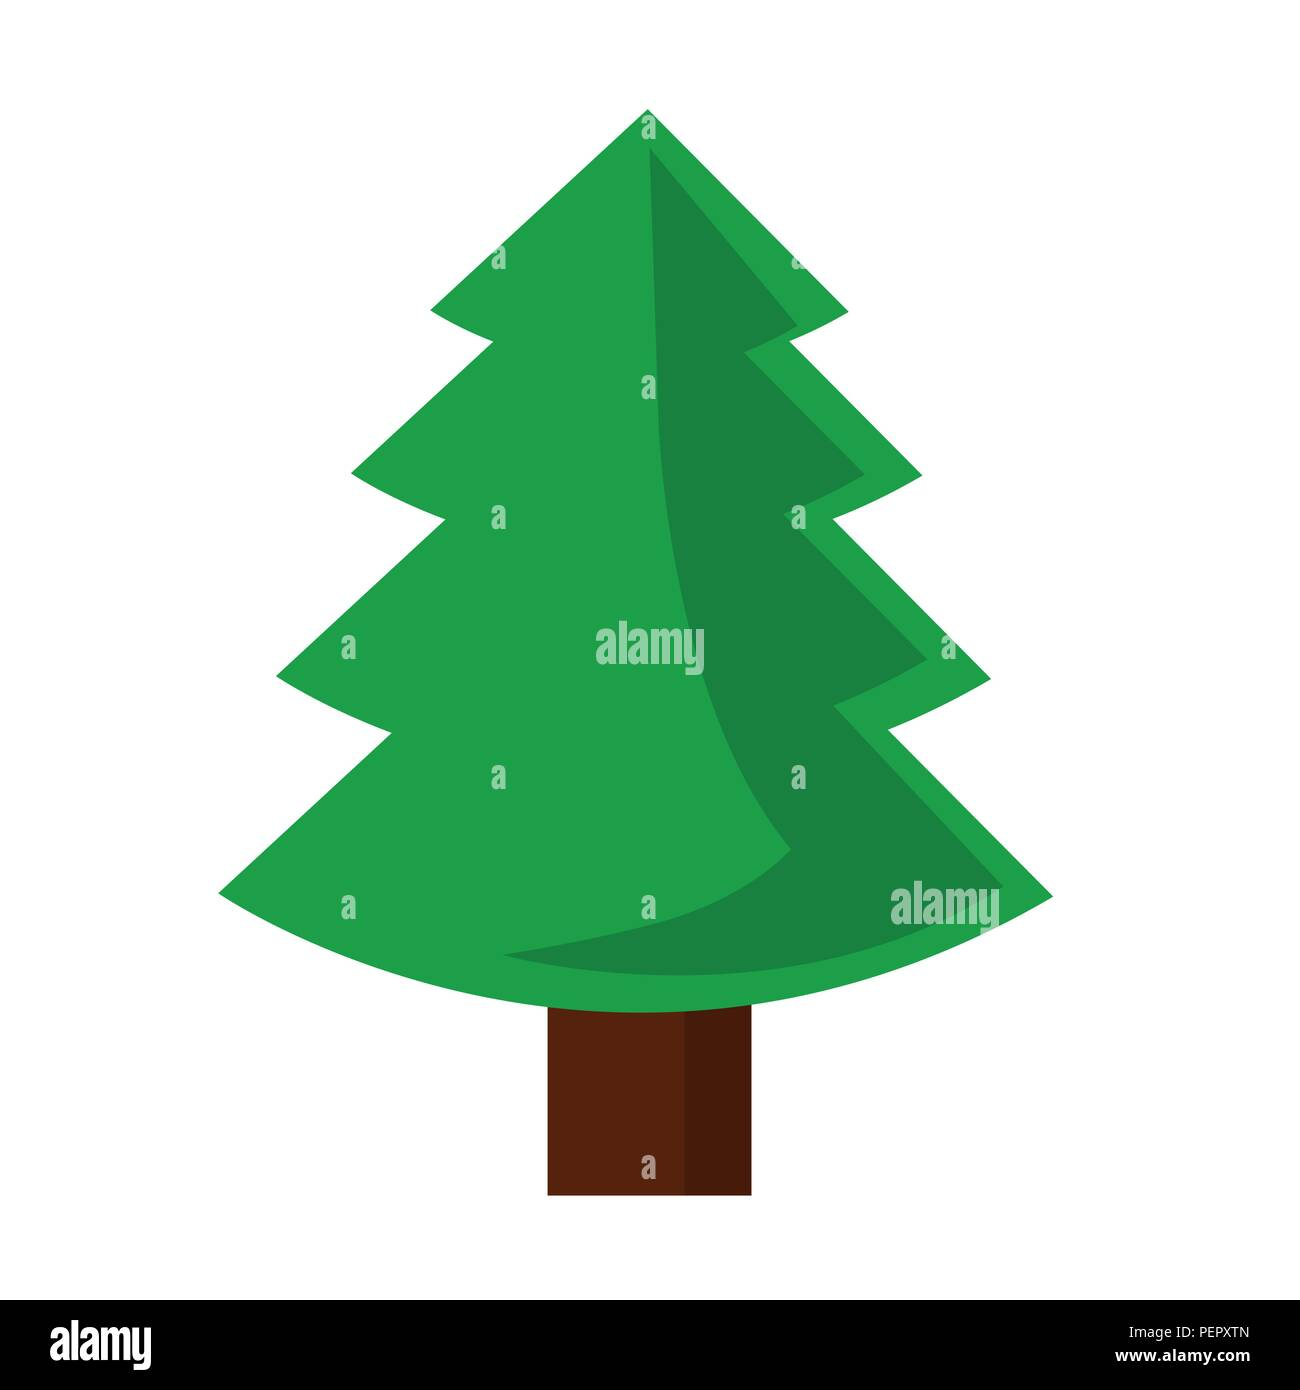 Christmas Tree Art.Green Simple Christmas Tree Vector Illustration Eps10 Stock